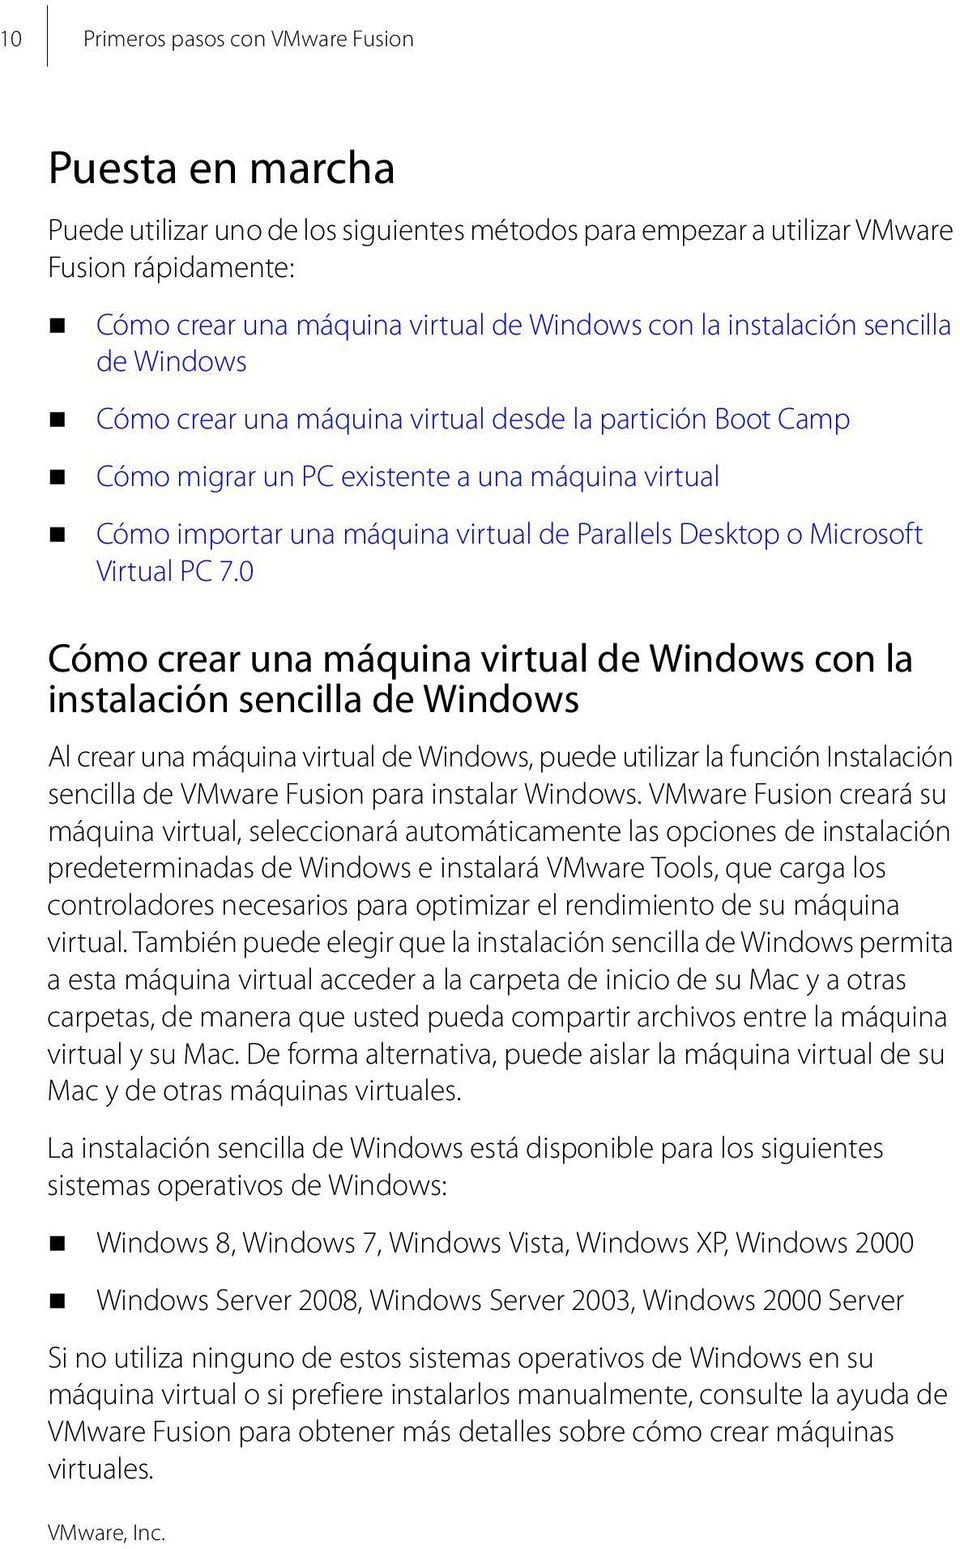 Microsoft Virtual PC 7.